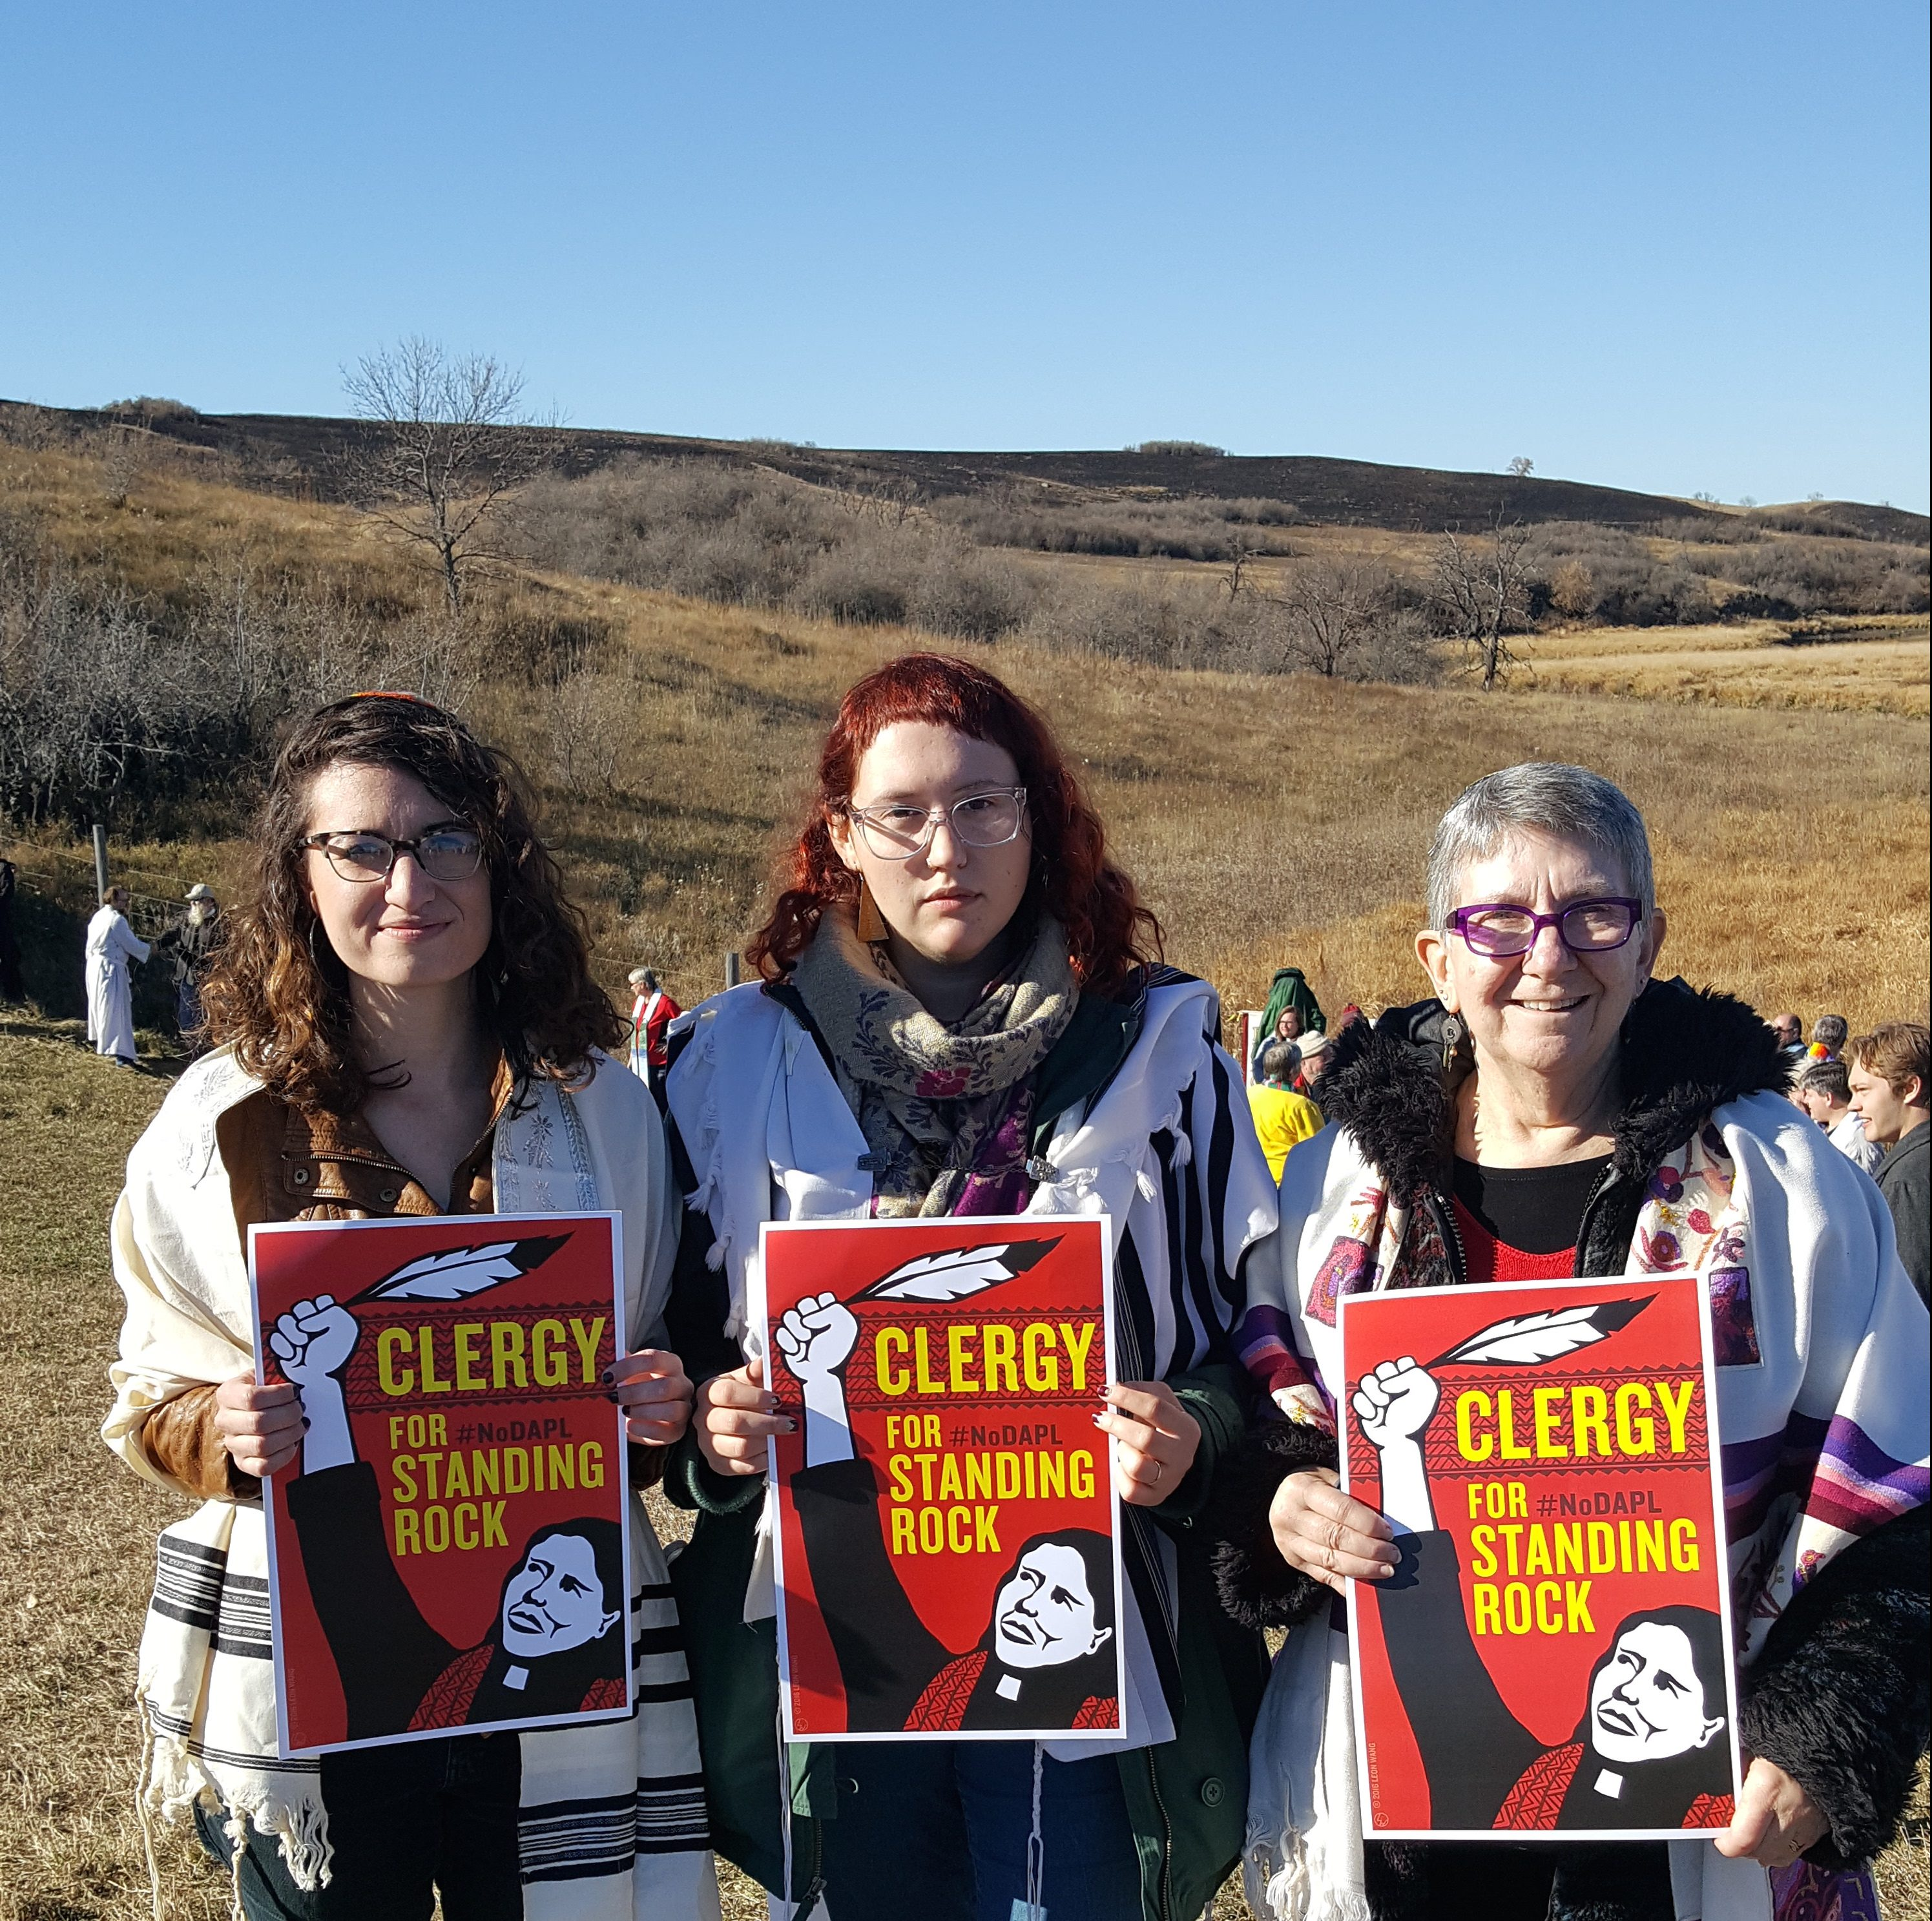 Rabbinical students Miriam Levia Grossman and Ariana Katz pose along with Rabbi Linda Holtzman during Clergy Day at Standing Rock reservation in support of the #NoDAPL protesters.